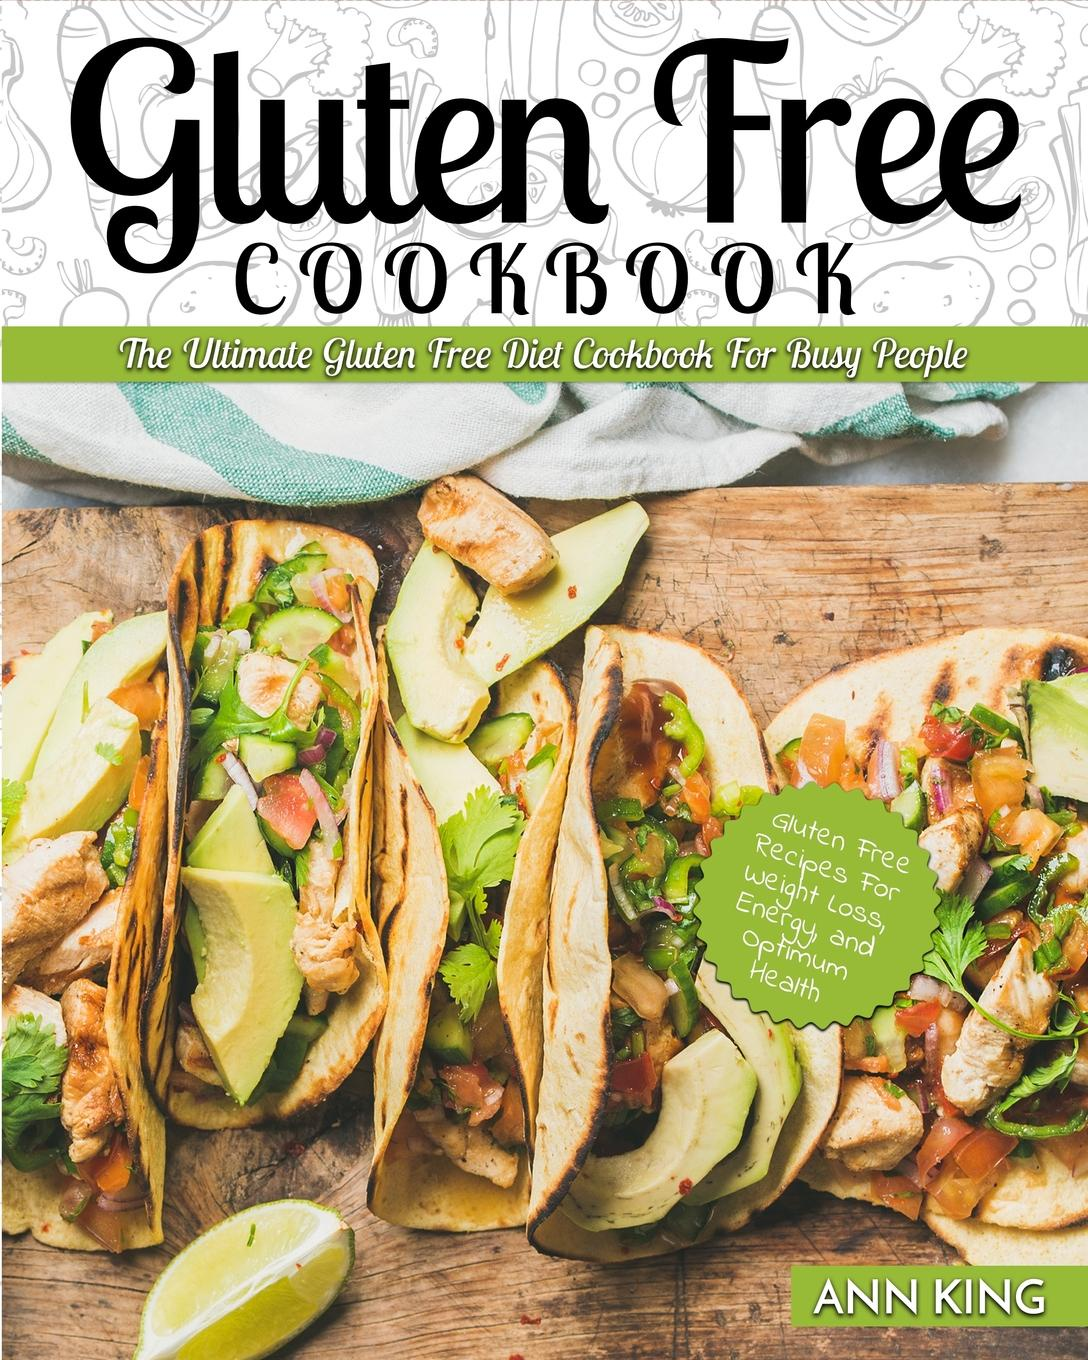 Фото - Ann King Gluten Free Cookbook. The Ultimate Gluten Free Diet Cookbook for Busy People - Gluten Free Recipes for Weight Loss, Energy, and Optimum Health hae soo kwak nano and microencapsulation for foods